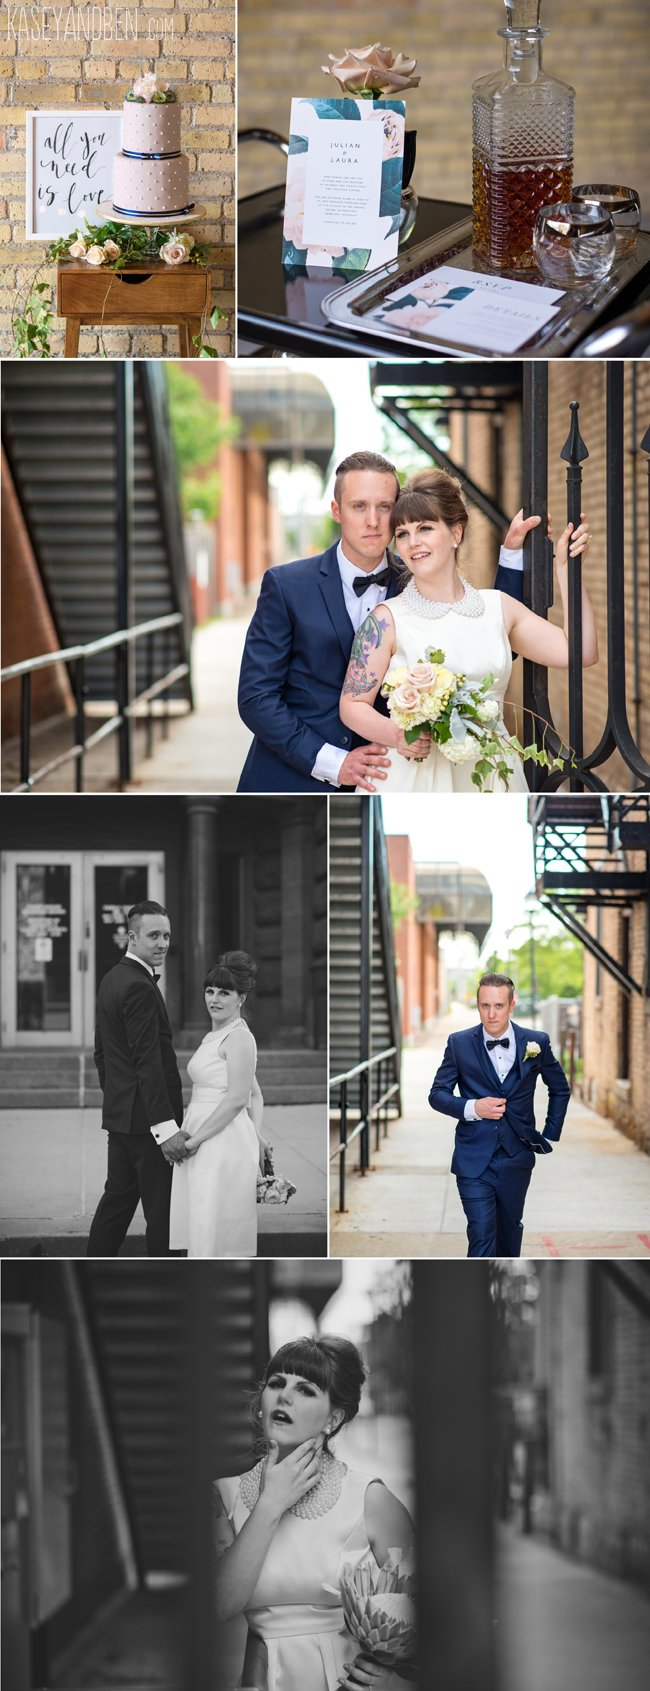 Green-Bay-Wedding-Gather-On-Broadway-Elopement-Downtown-Small-Intimate-Photographer-Photography-Midcentury-Modern-2